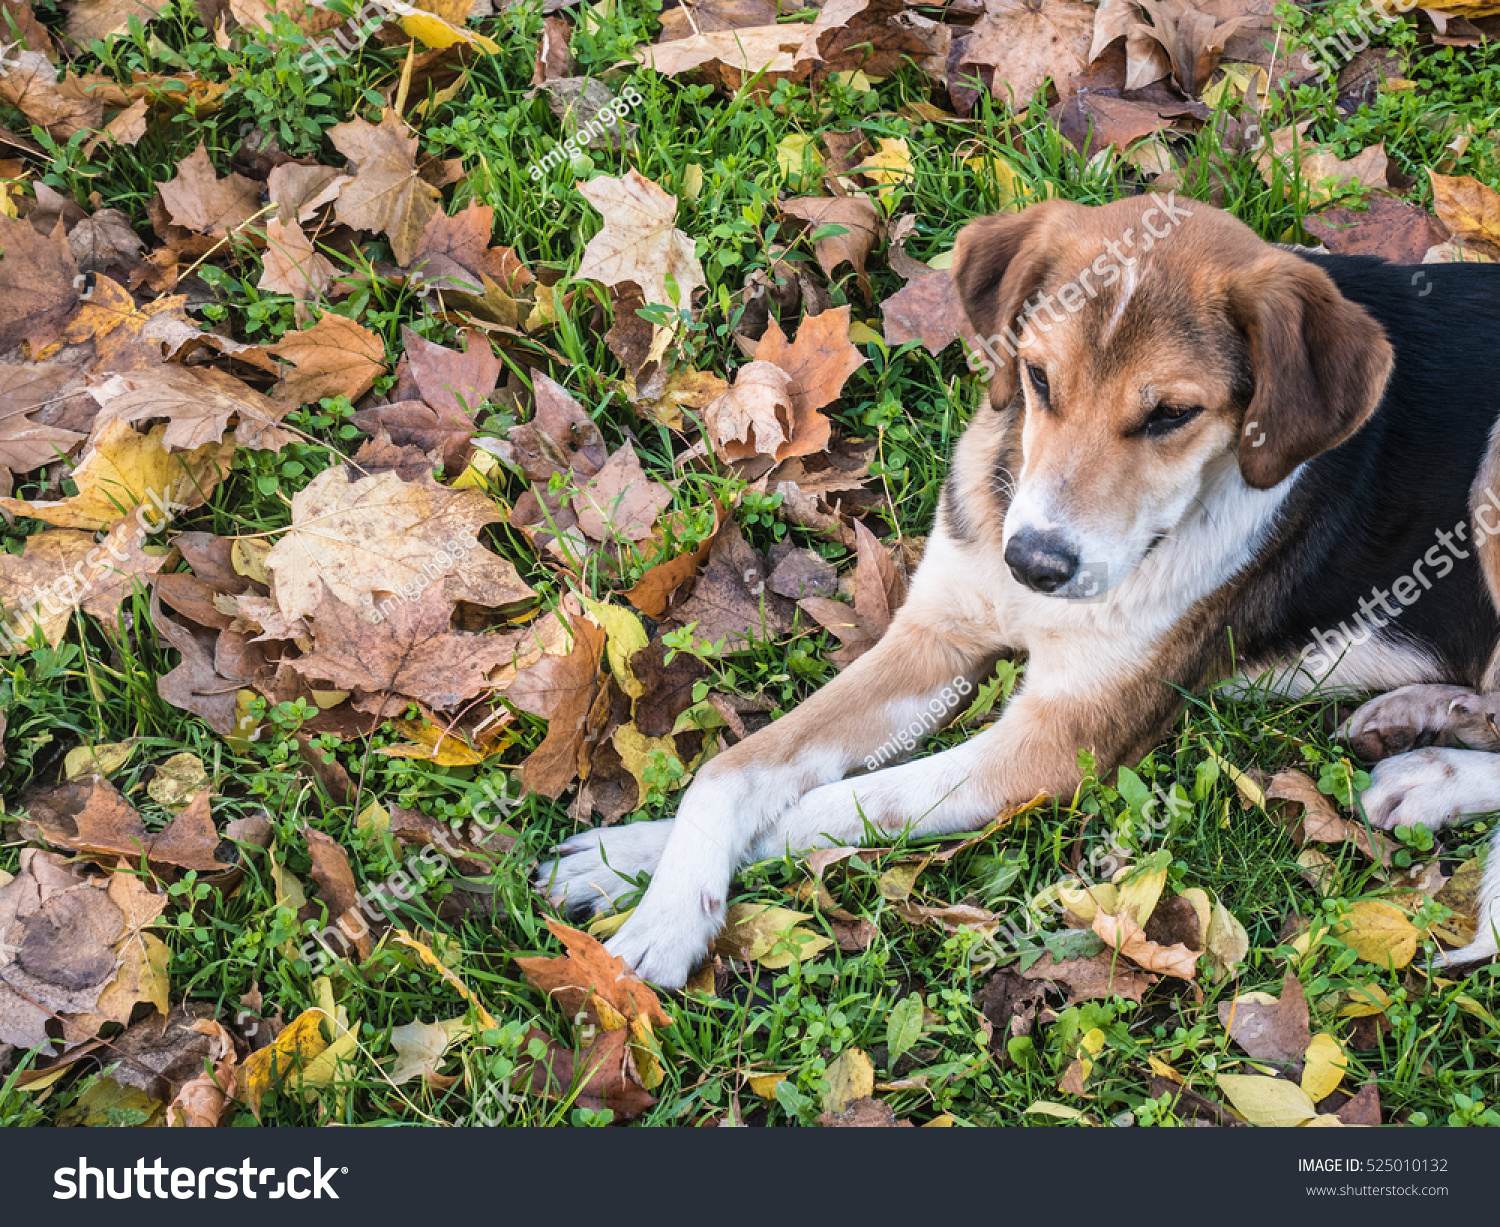 stock-photo-spotted-dog-lying-with-crossed-legs-in-the-fallen-leaves-525010132